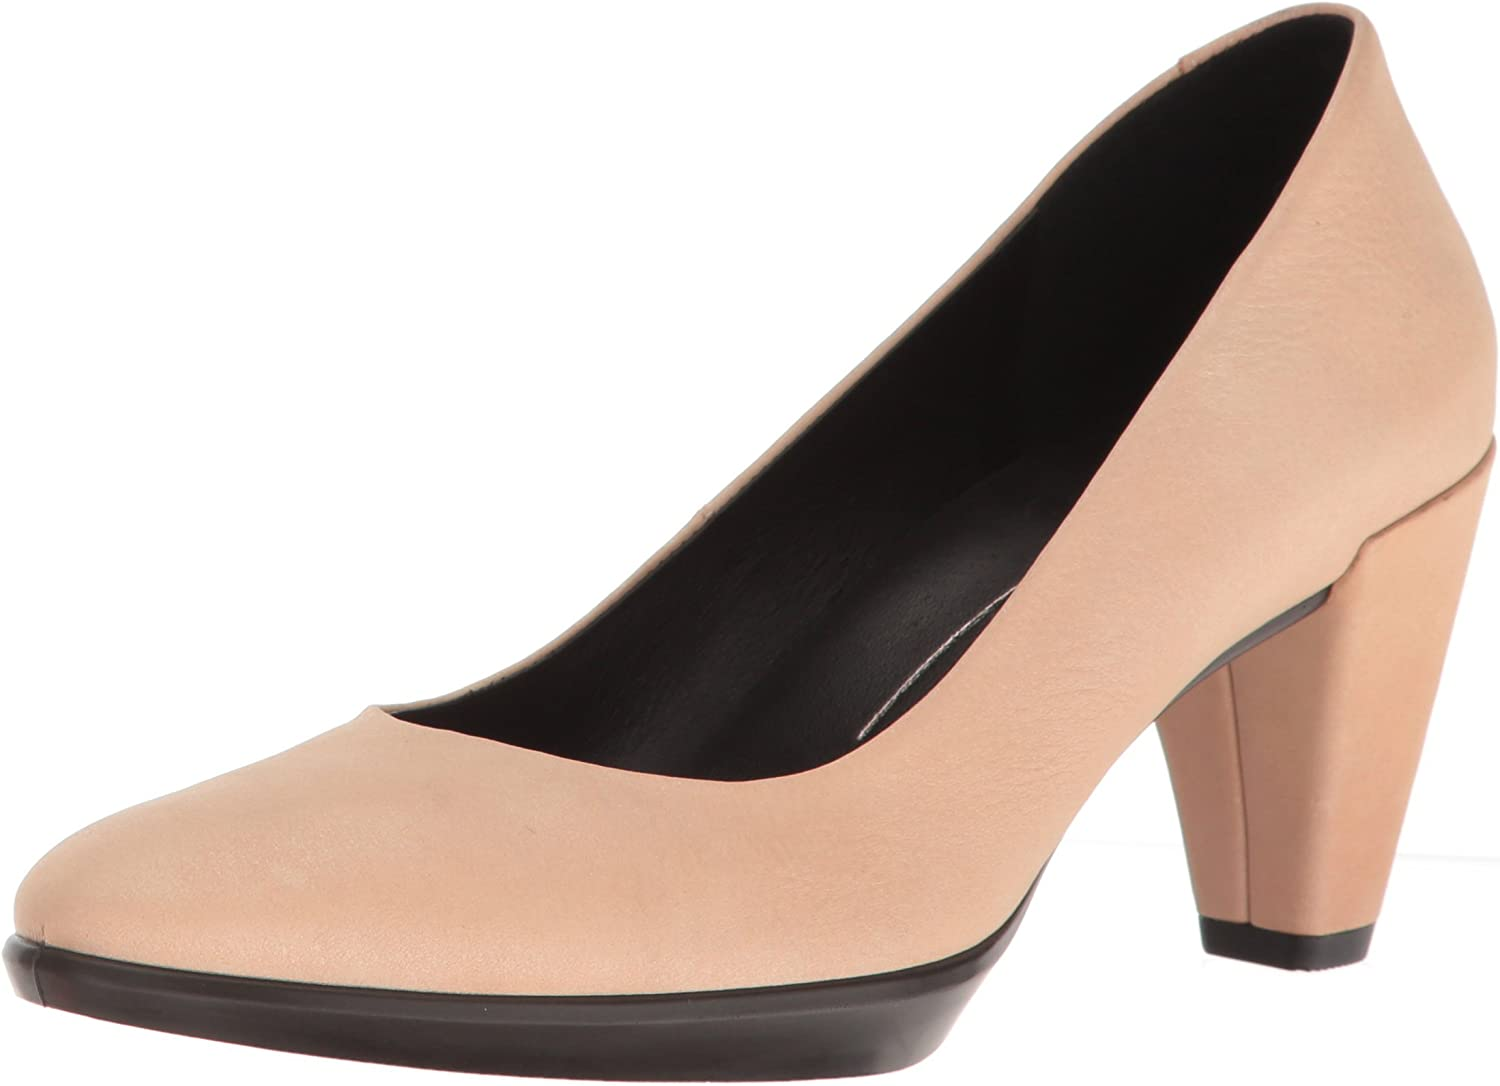 ECCO Womens Shape 55 Plateau Pump Dress Pump